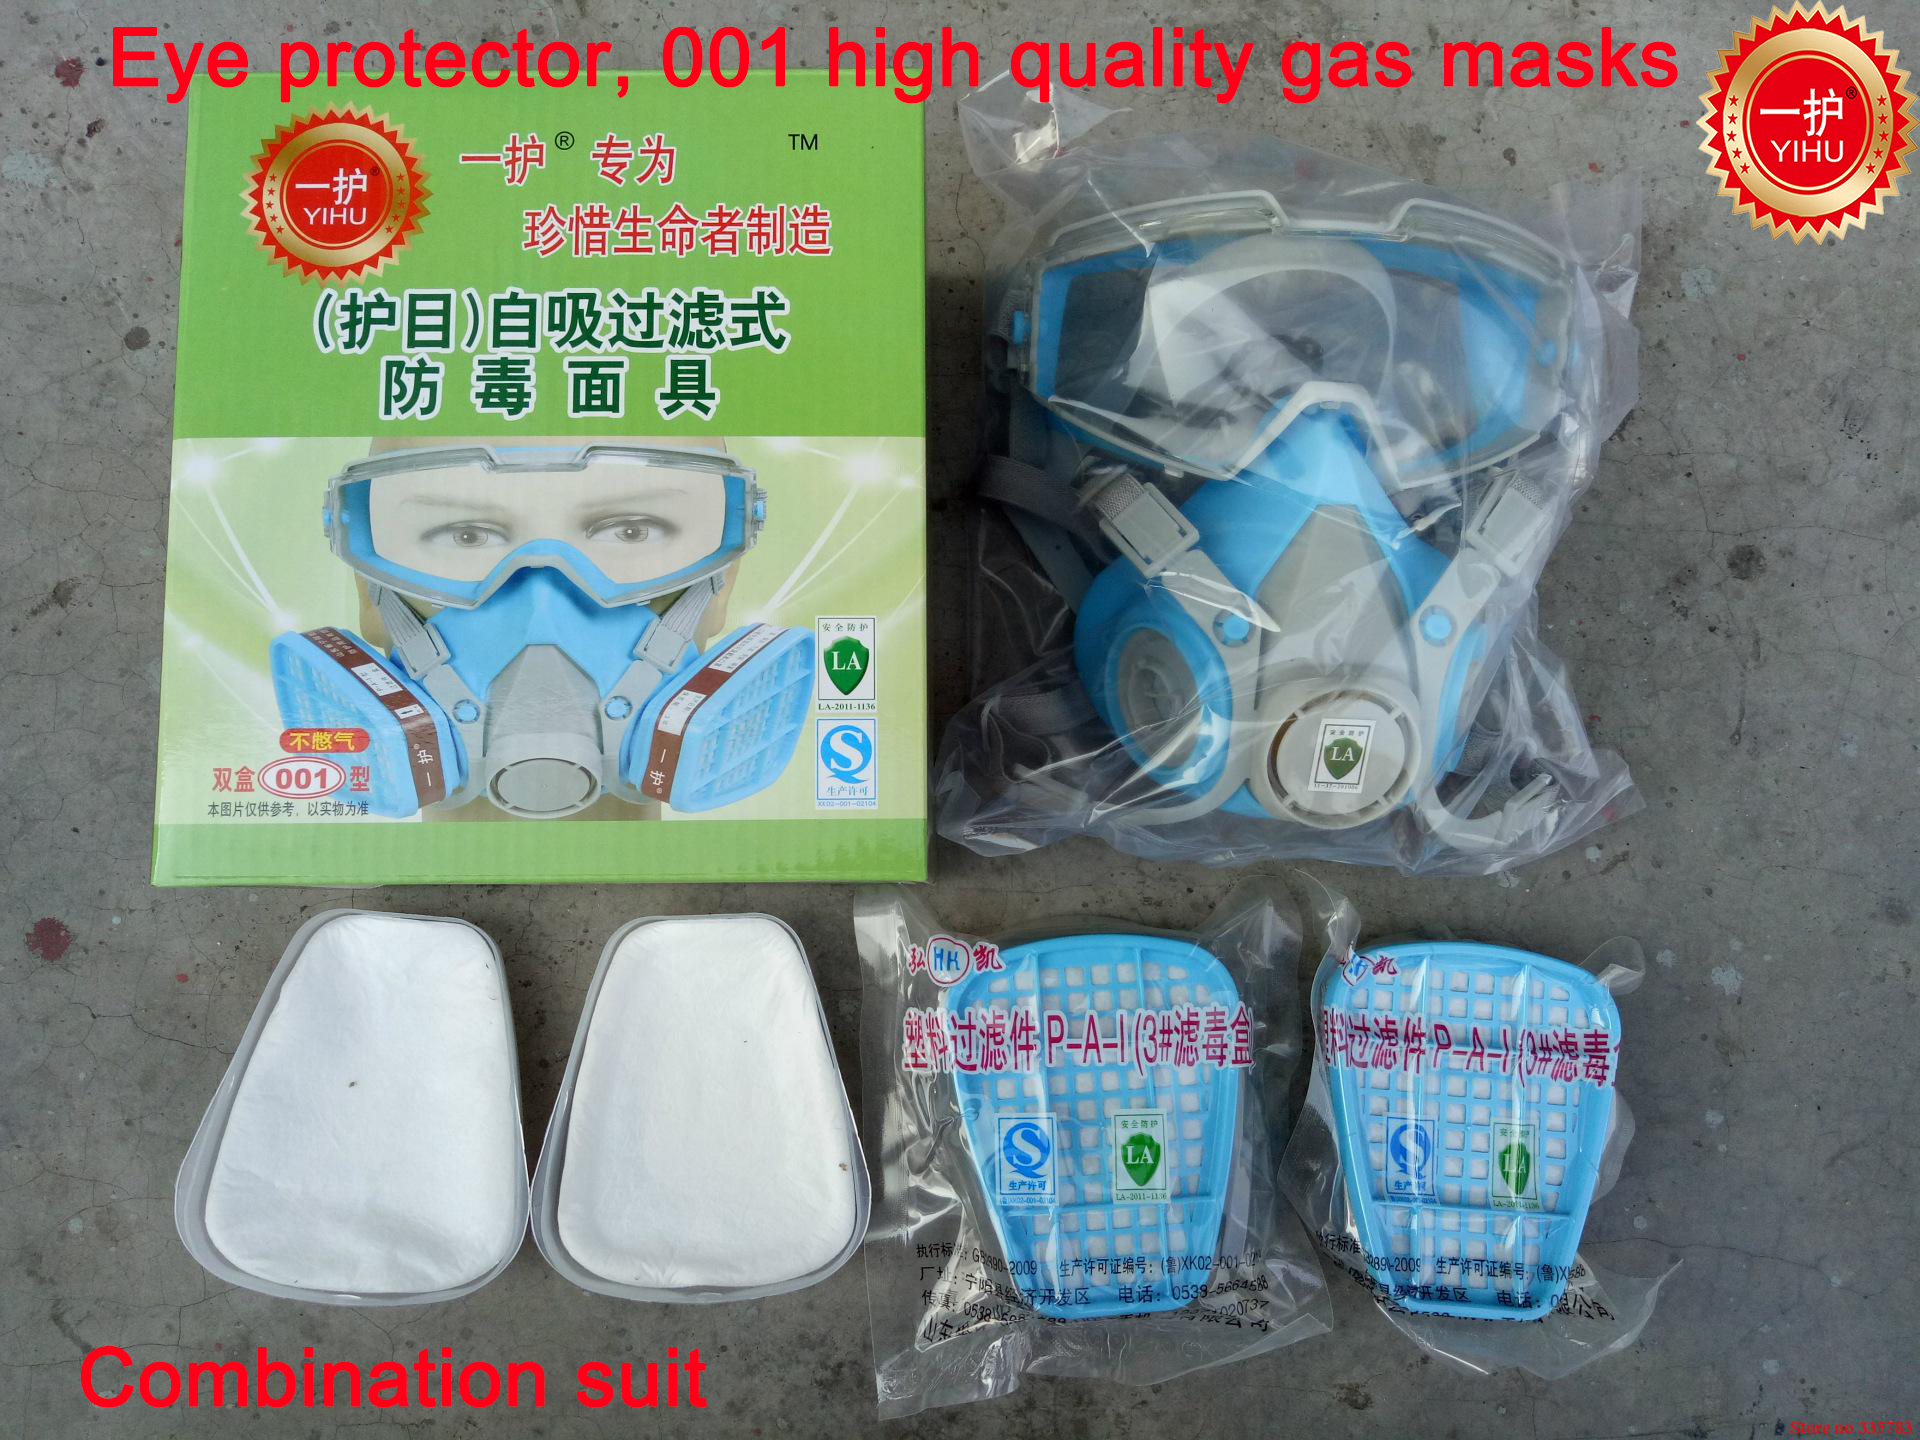 YIHU respirator gas mask High quality 7 a combination paint respirator paint spray pesticides Fire emergency full face gas mask yihu gas mask blue two pot efficient respirator gas mask paint spray pesticides industrial safety protective mask